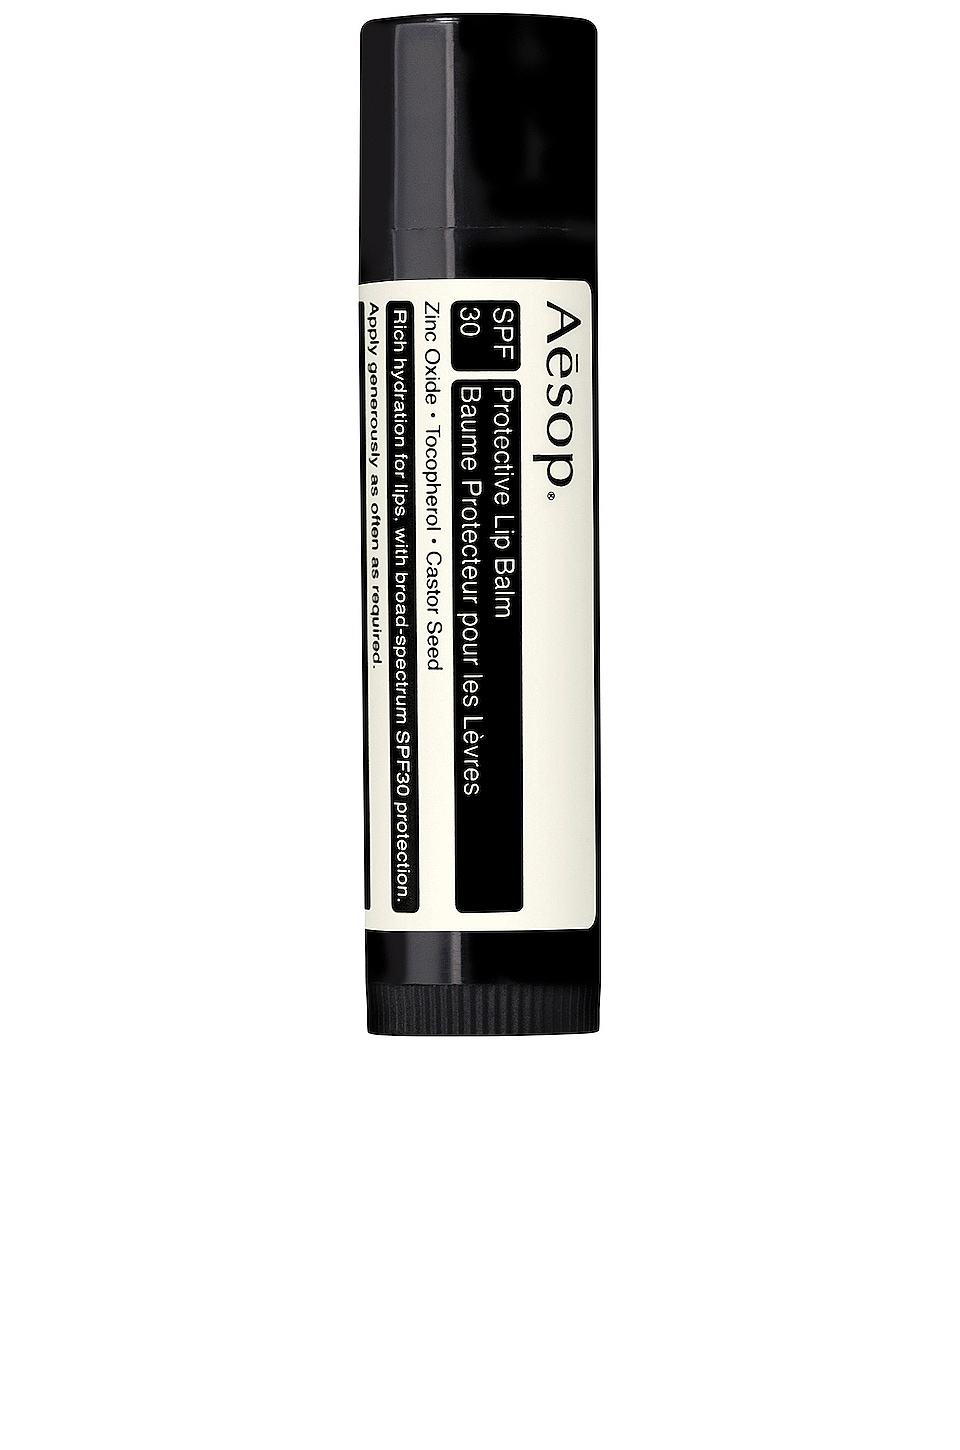 Aesop Avail SPF 30 Lip Balm in All